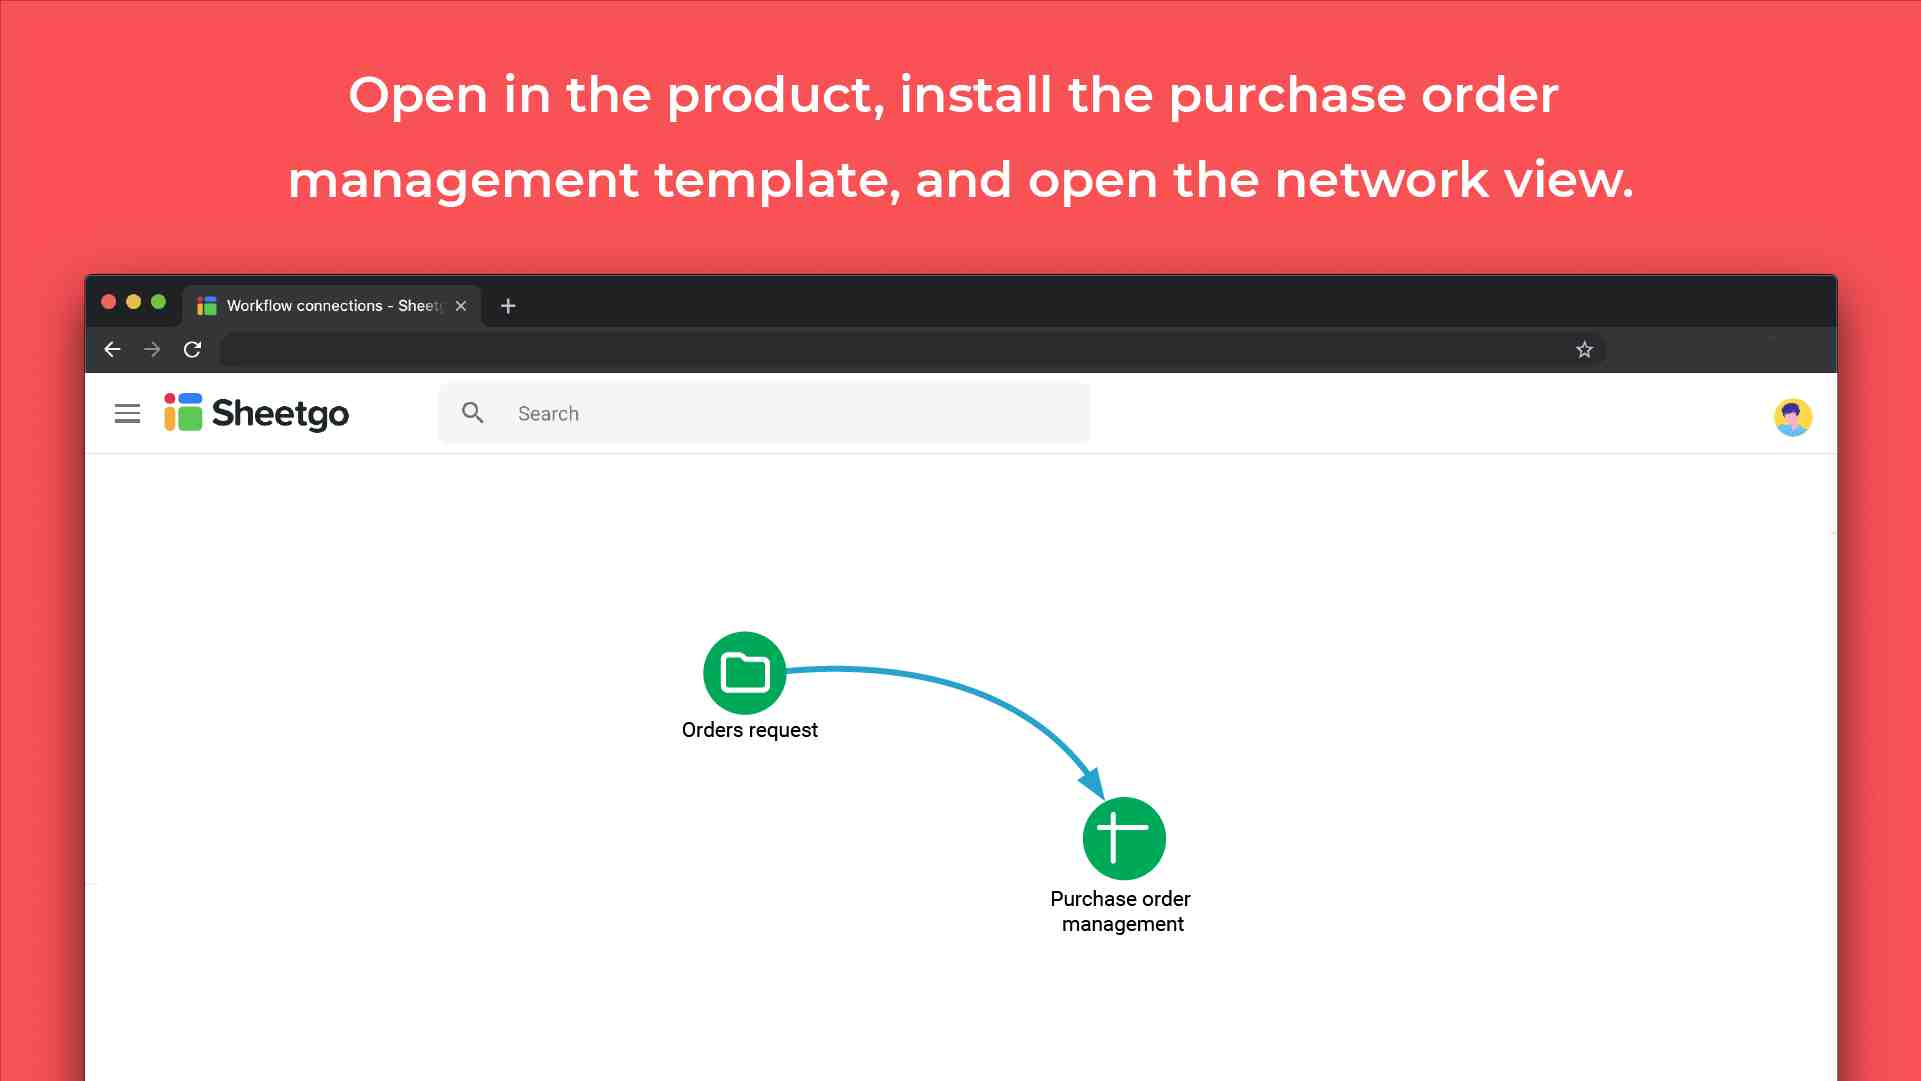 Purchase order management template connections